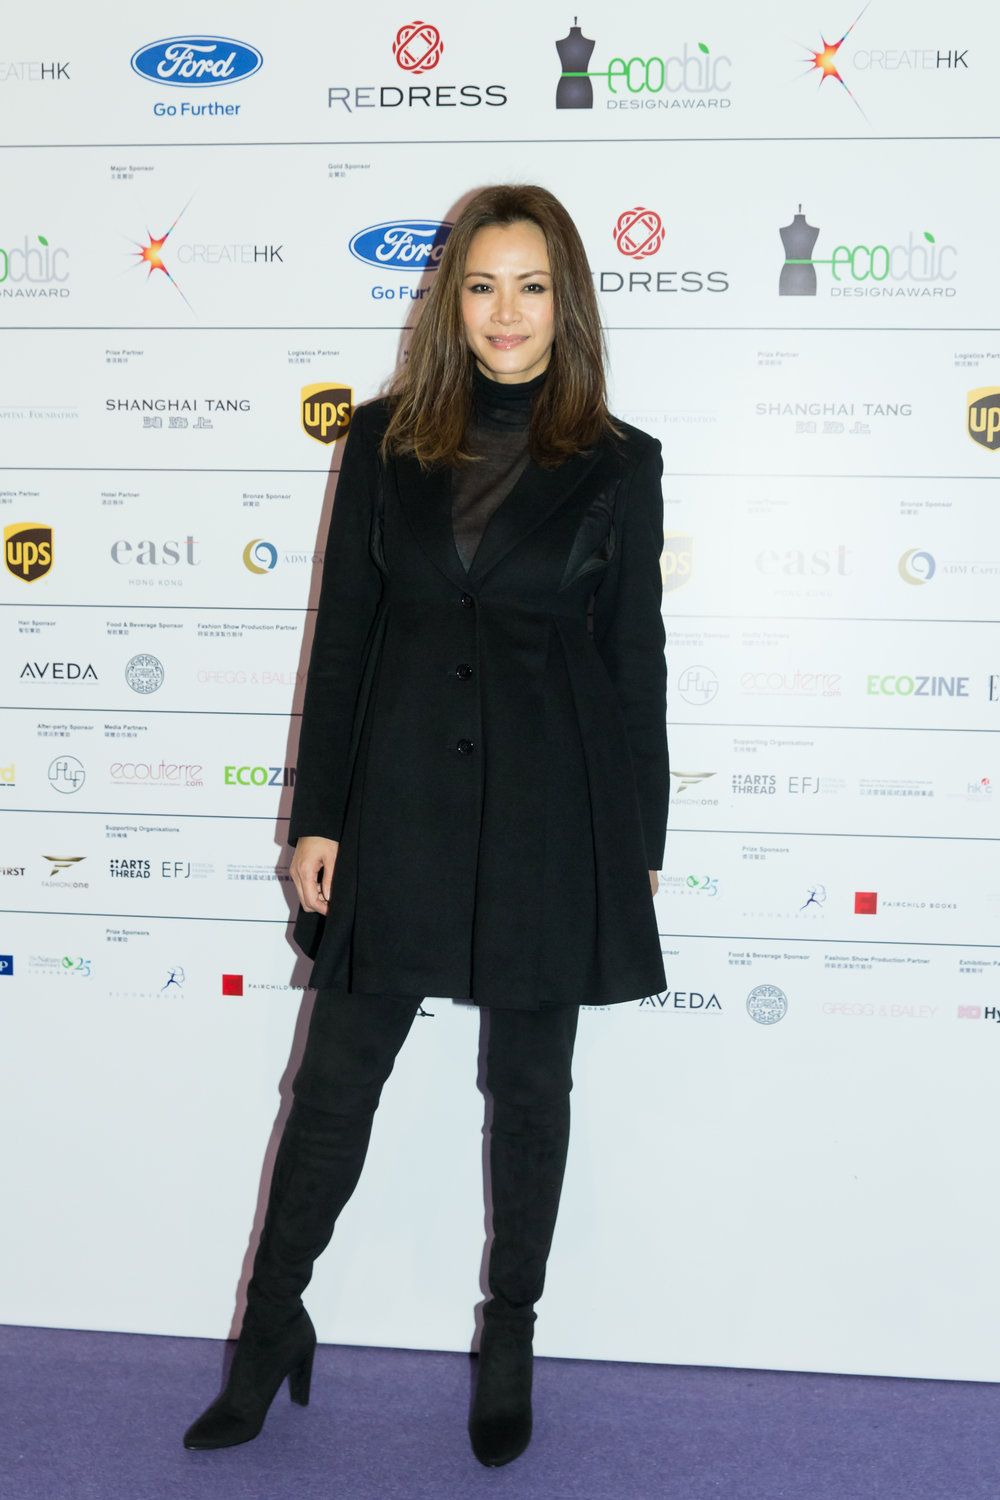 Hong Kong supermodel Janet Ma wears Alex Leau to attend the Redress Design Award 2015/16 Grand Final Show